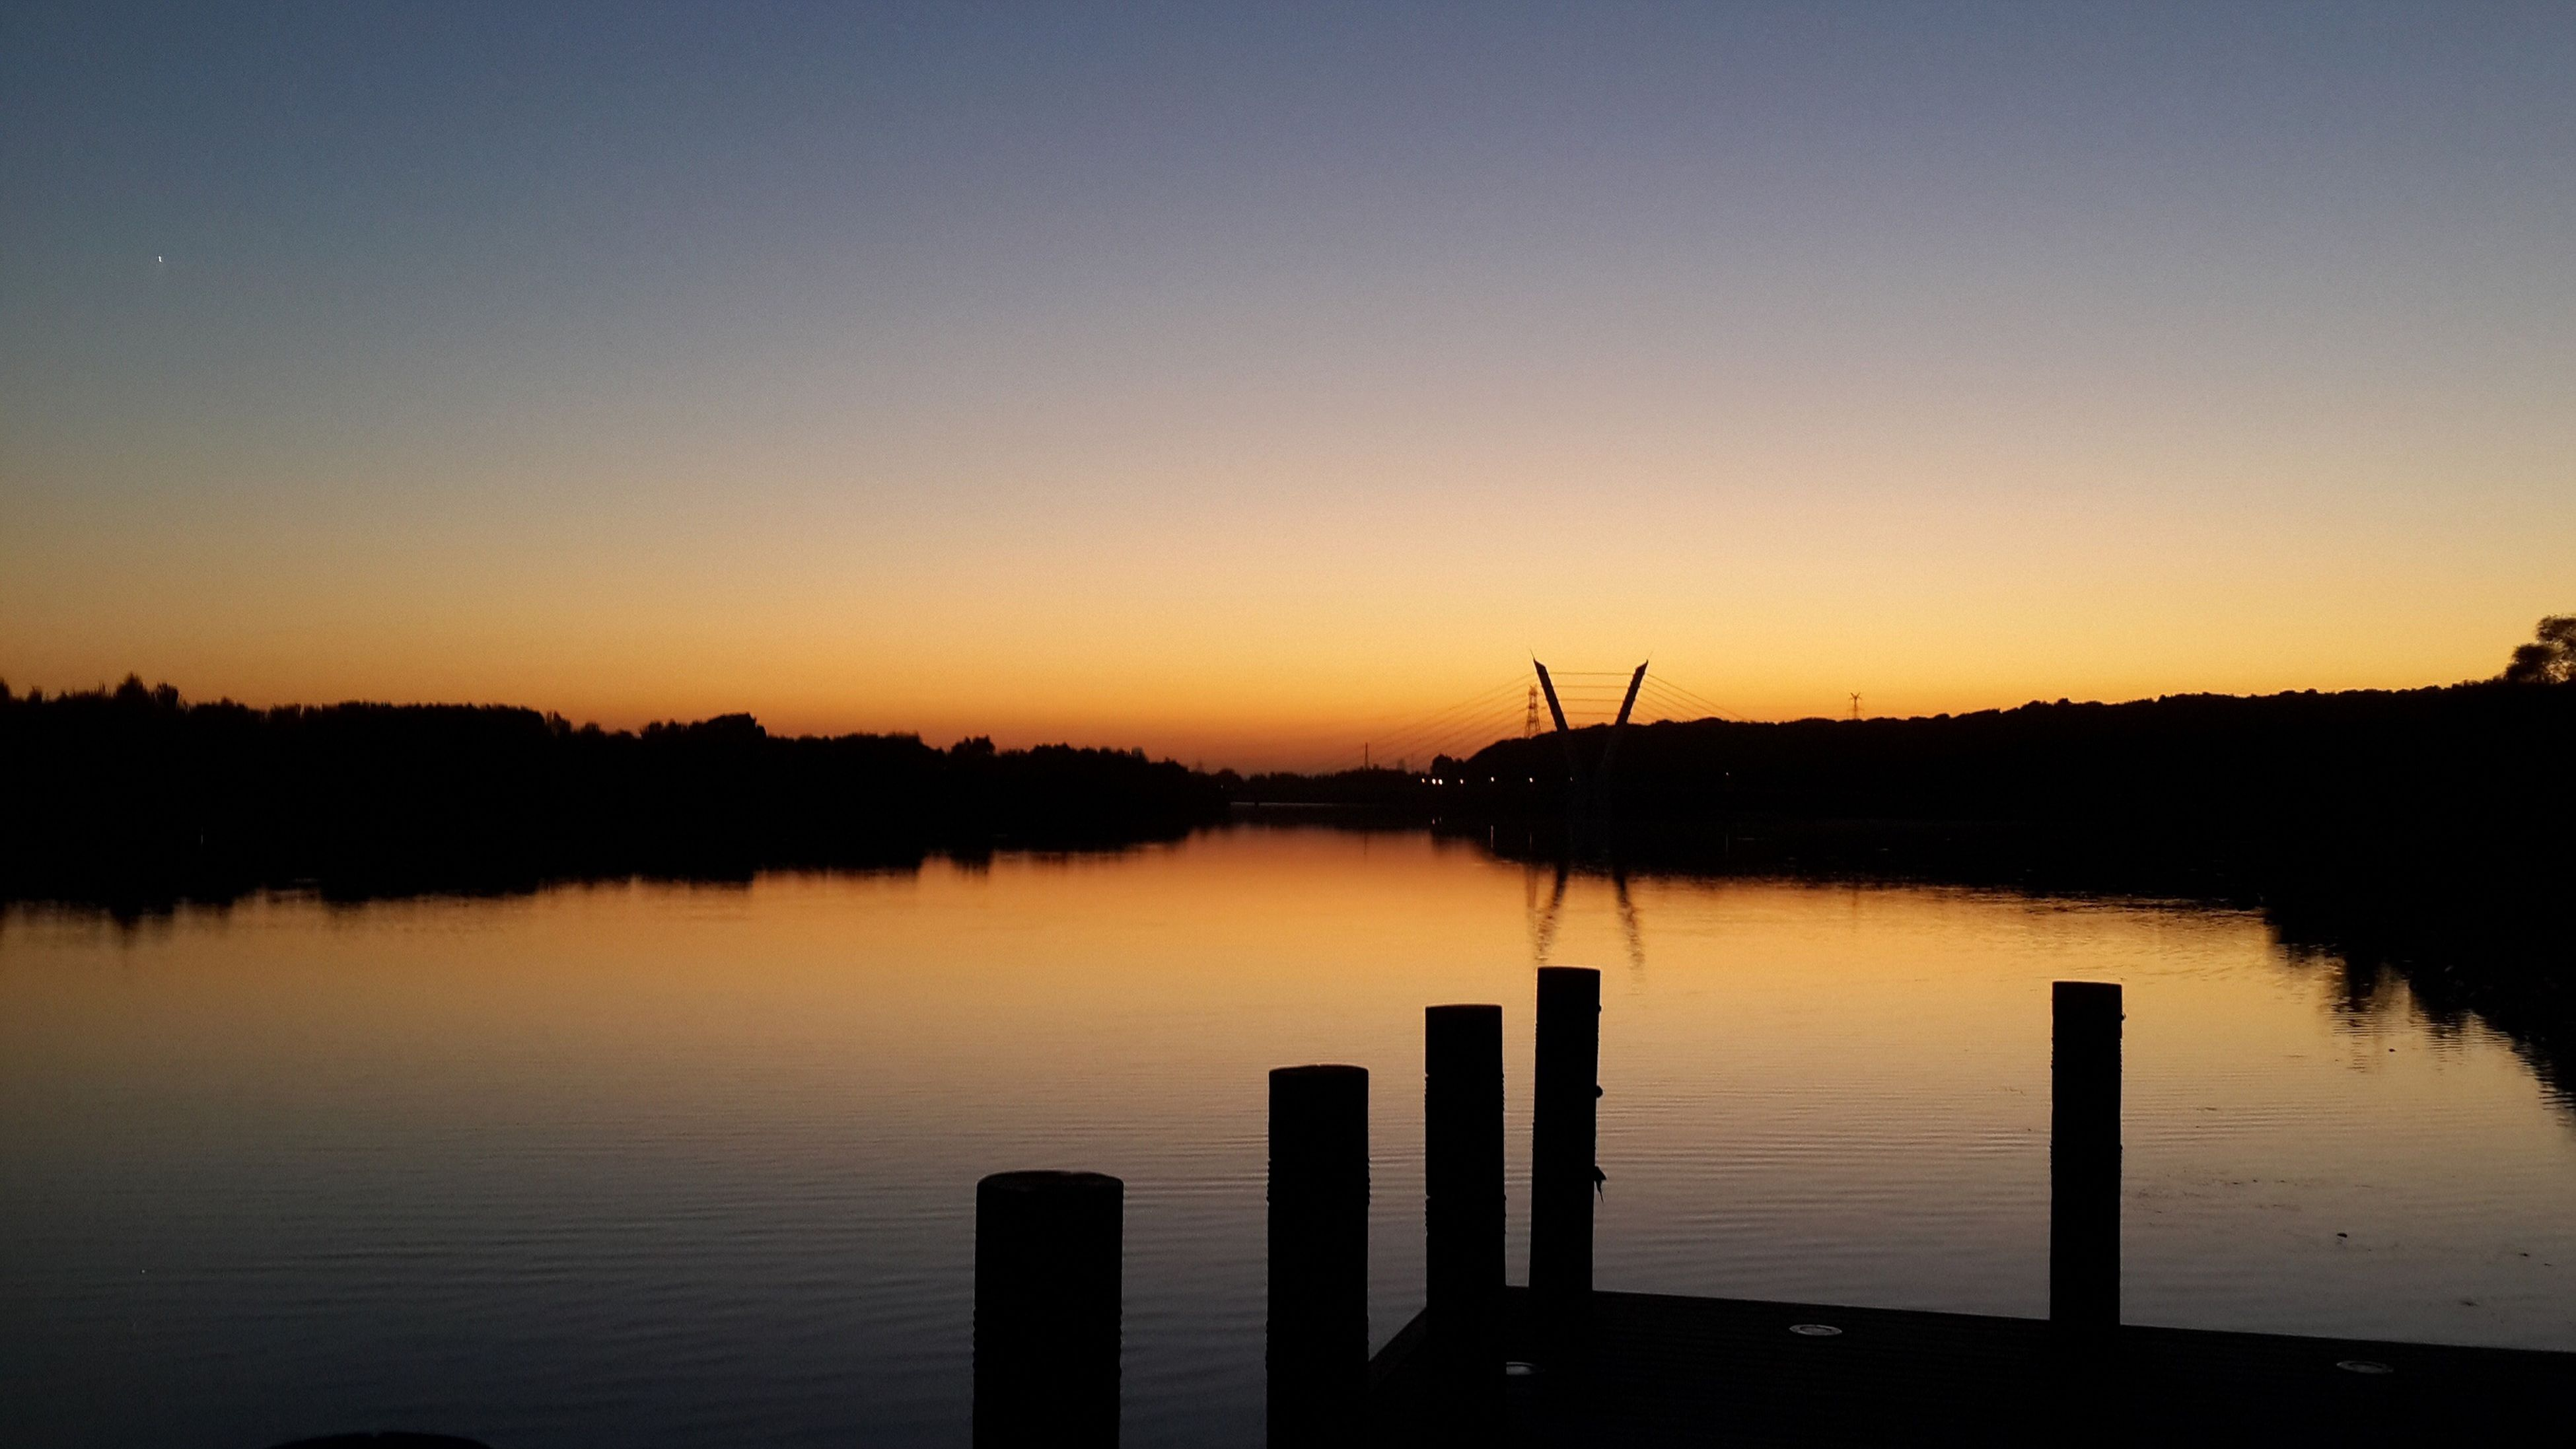 water, sunset, reflection, lake, tranquil scene, silhouette, tranquility, clear sky, copy space, scenics, beauty in nature, nature, waterfront, idyllic, dusk, calm, wooden post, river, outdoors, no people